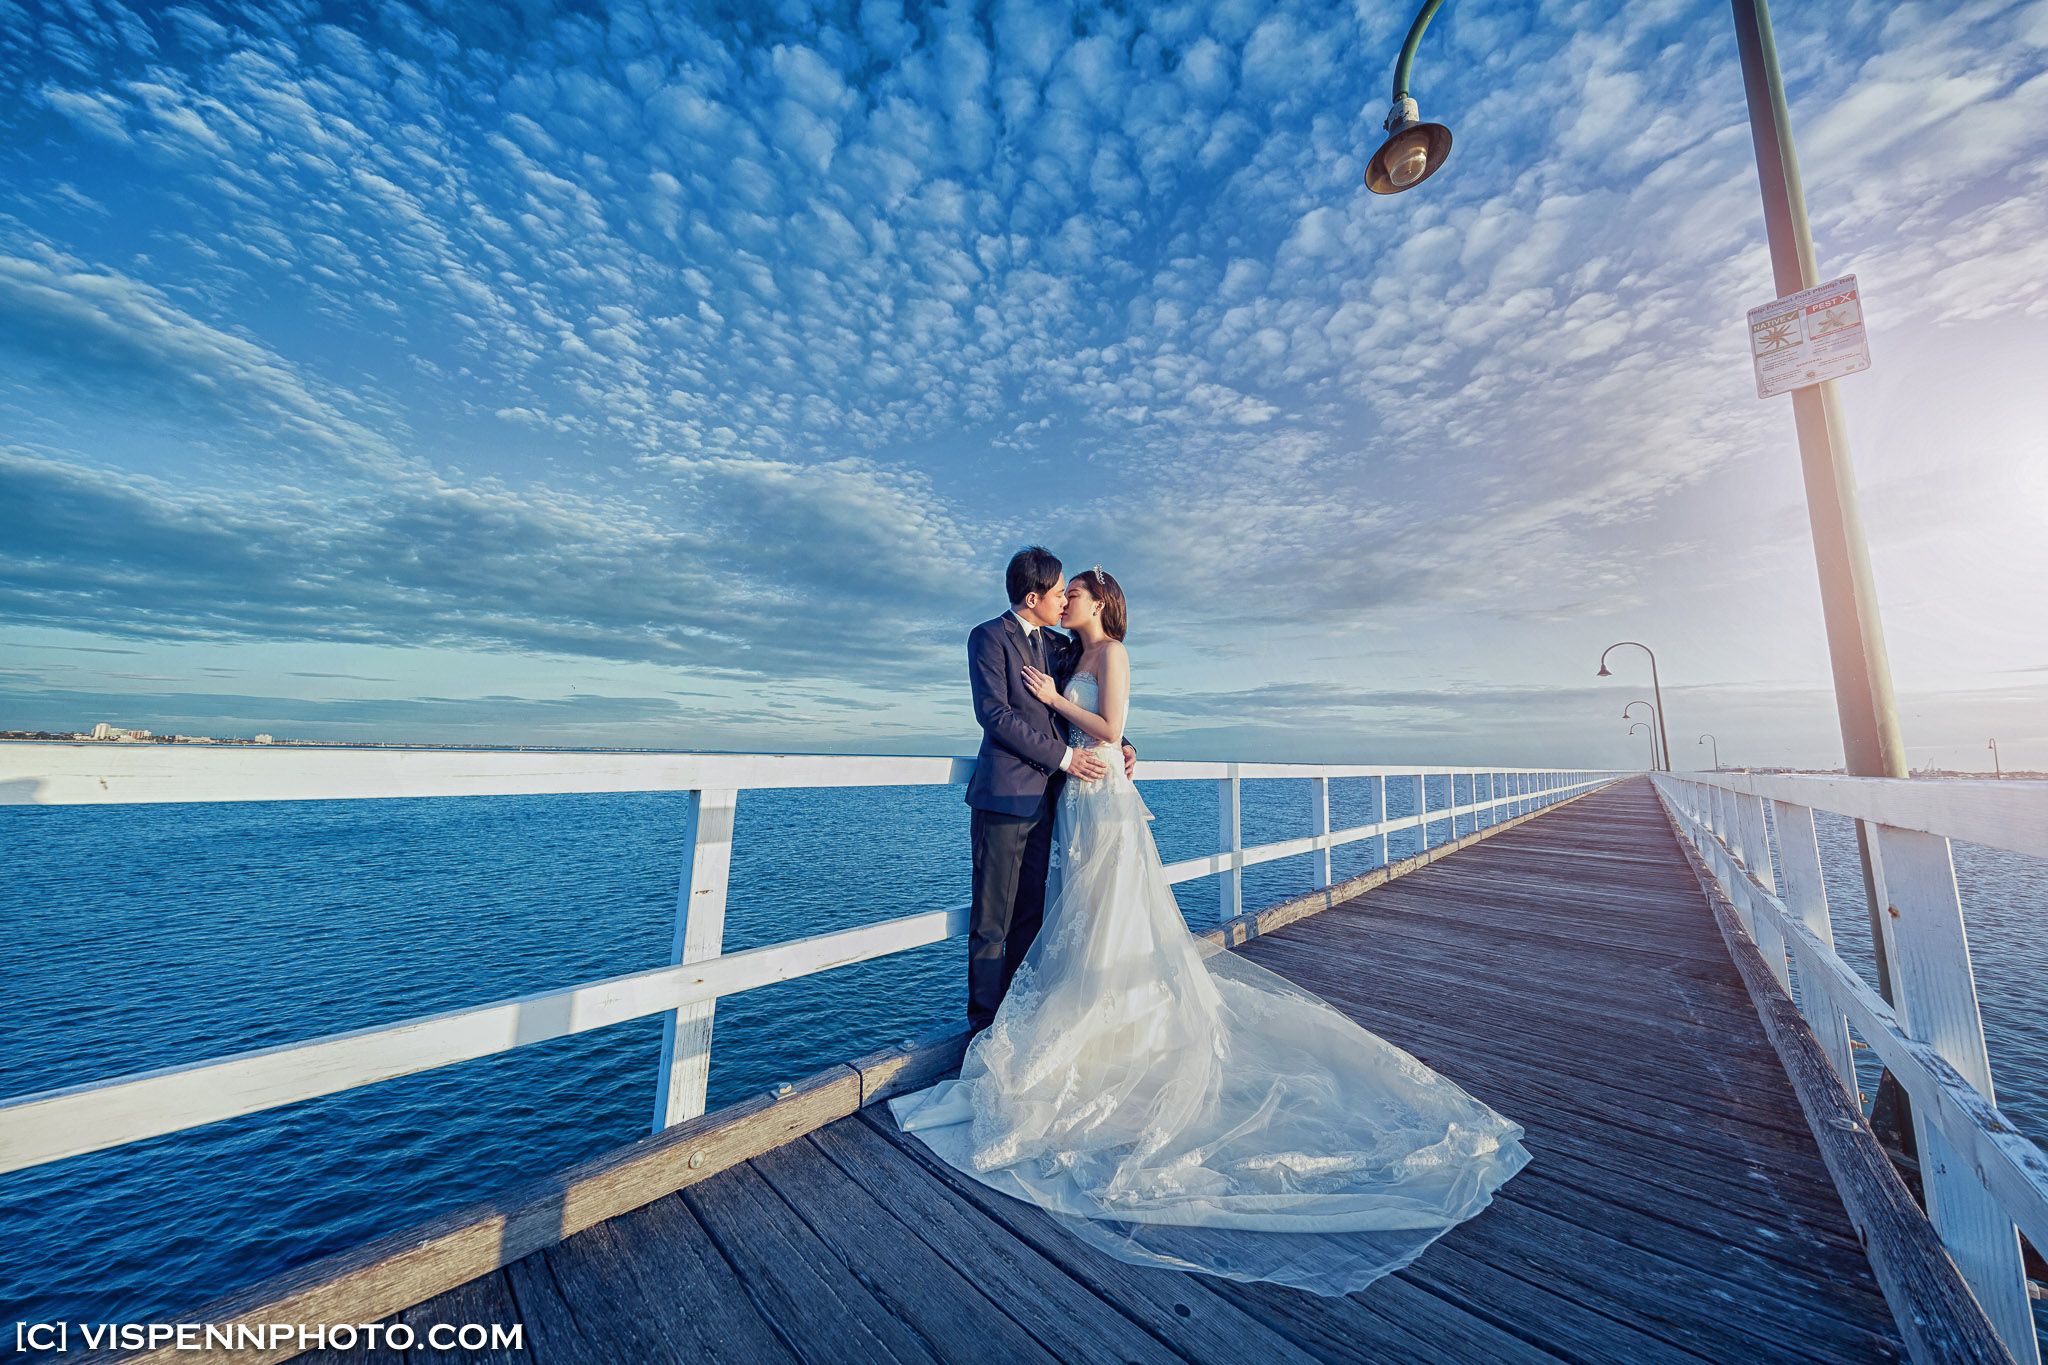 PRE WEDDING Photography Melbourne ZHPENN JackySerena 2214 1 1